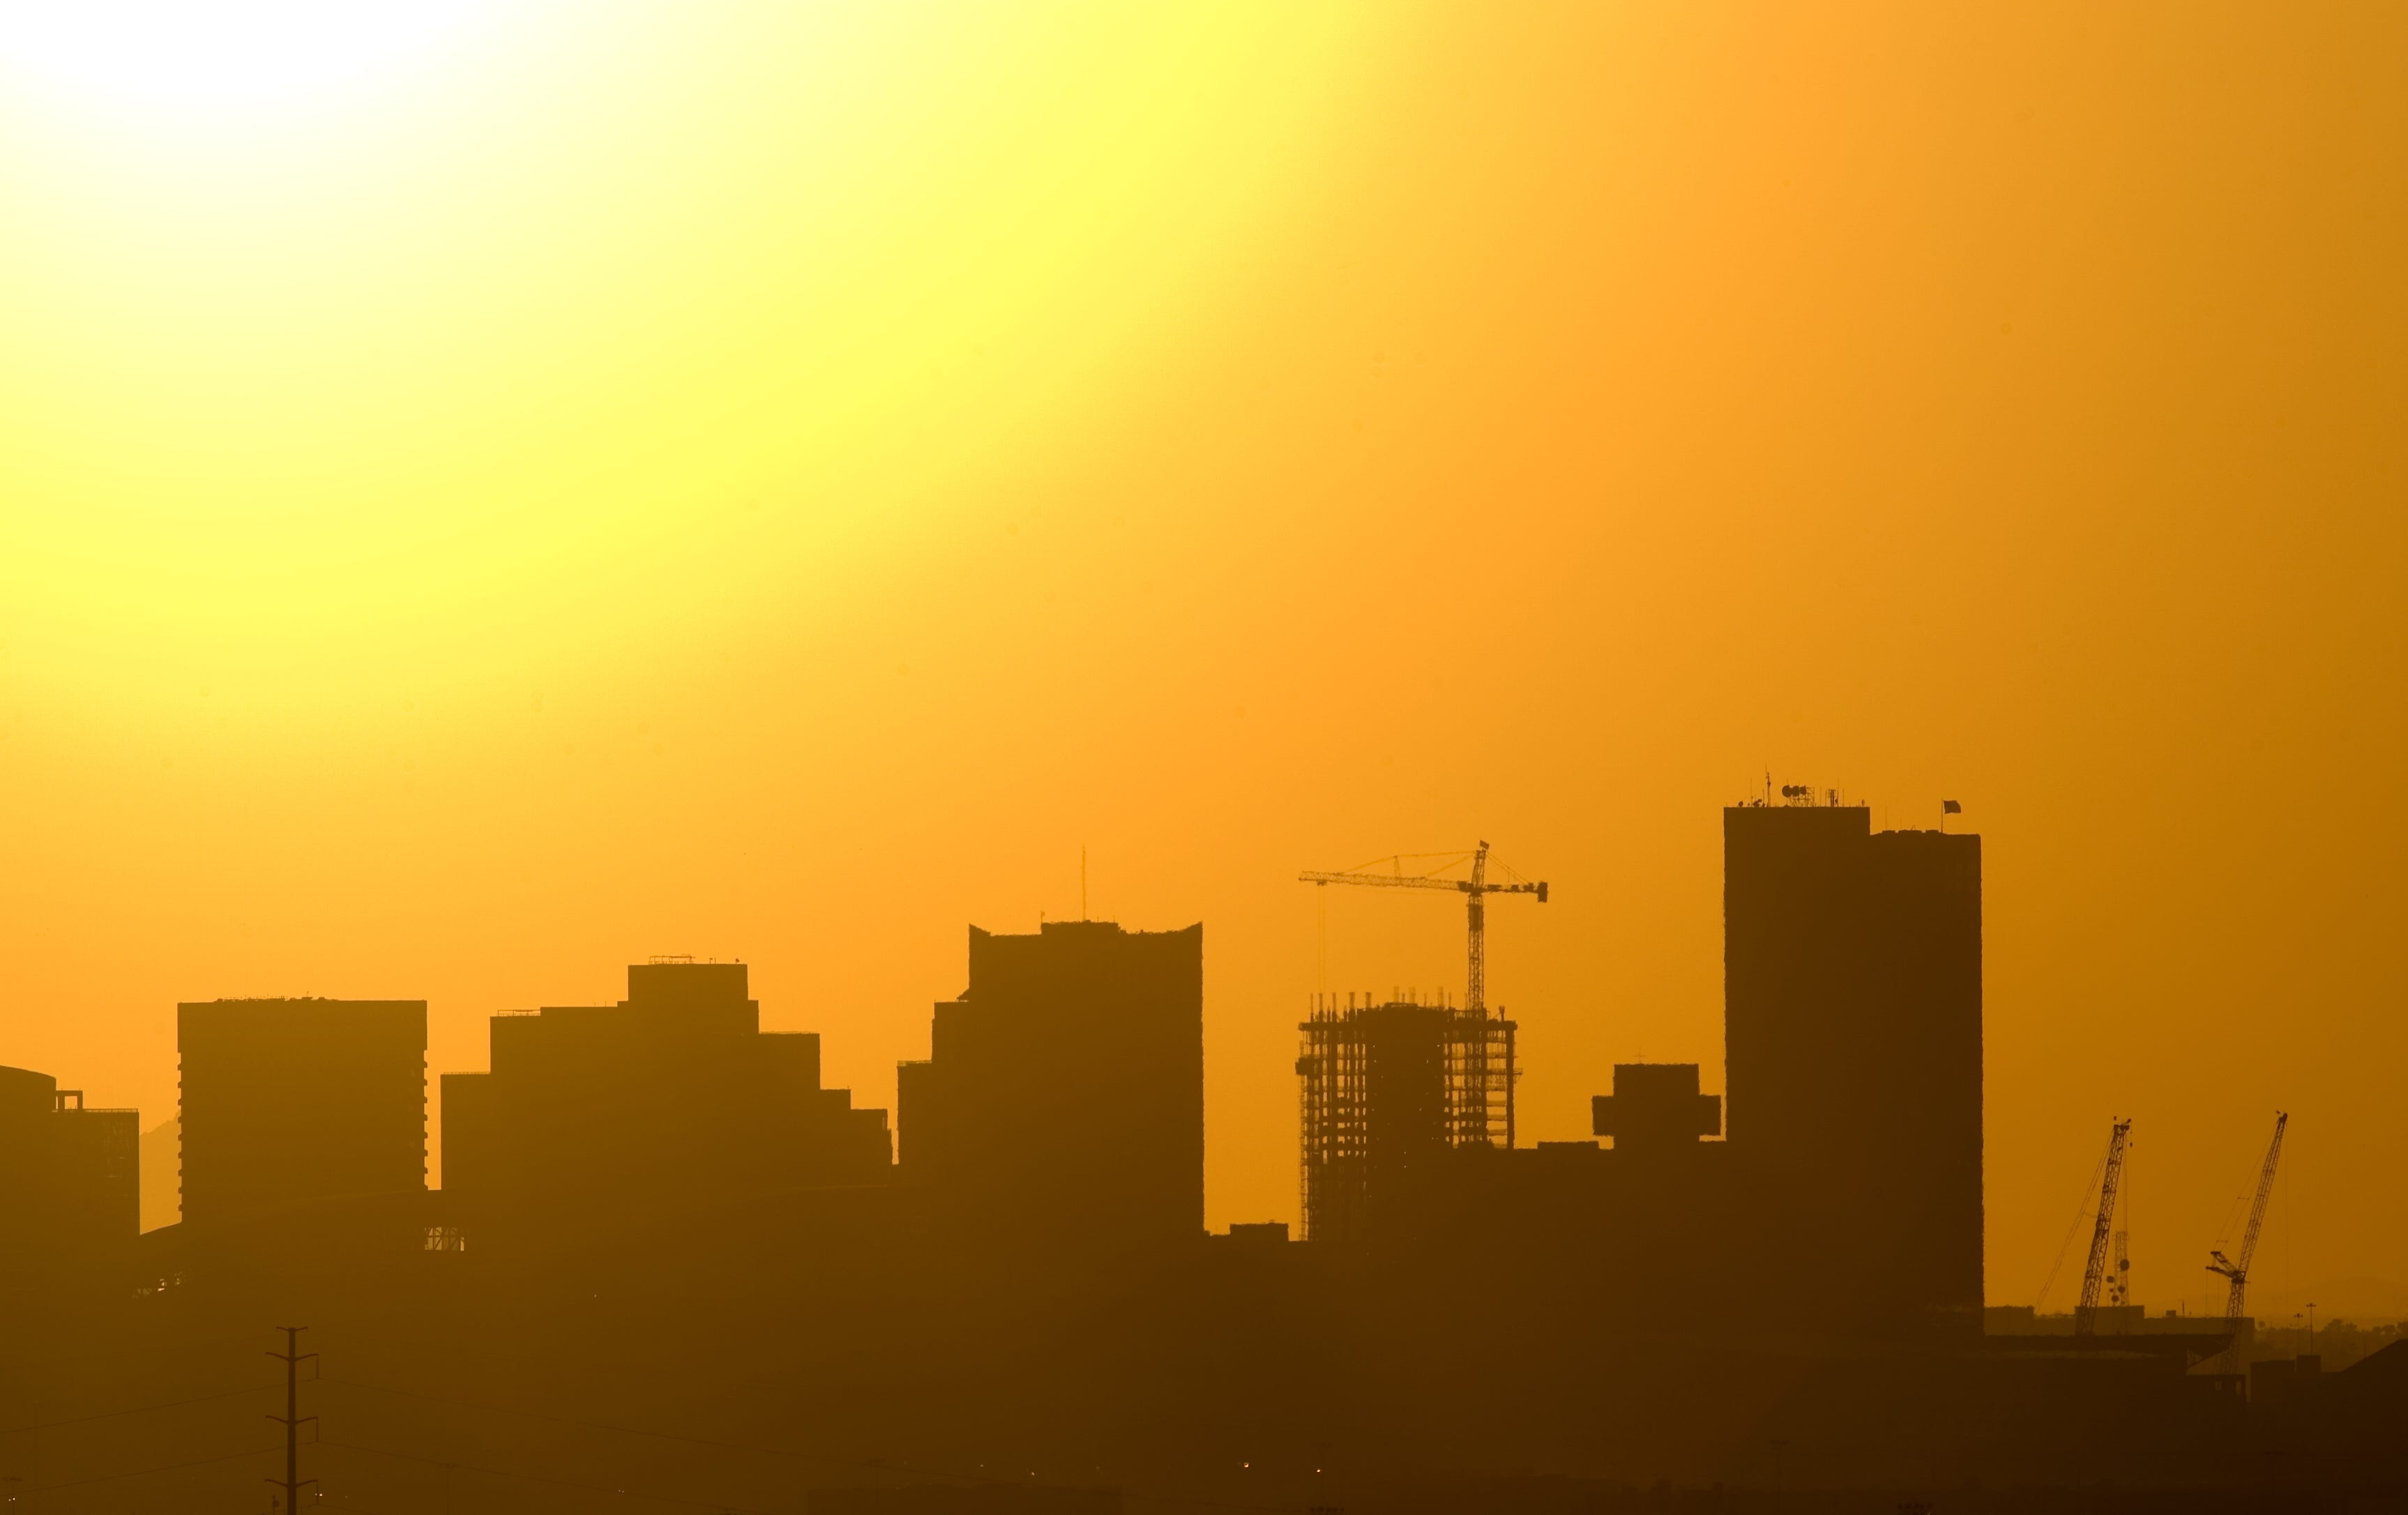 Heat has already killed 2 people in 2017 and is suspected in 12 other deaths in Maricopa County